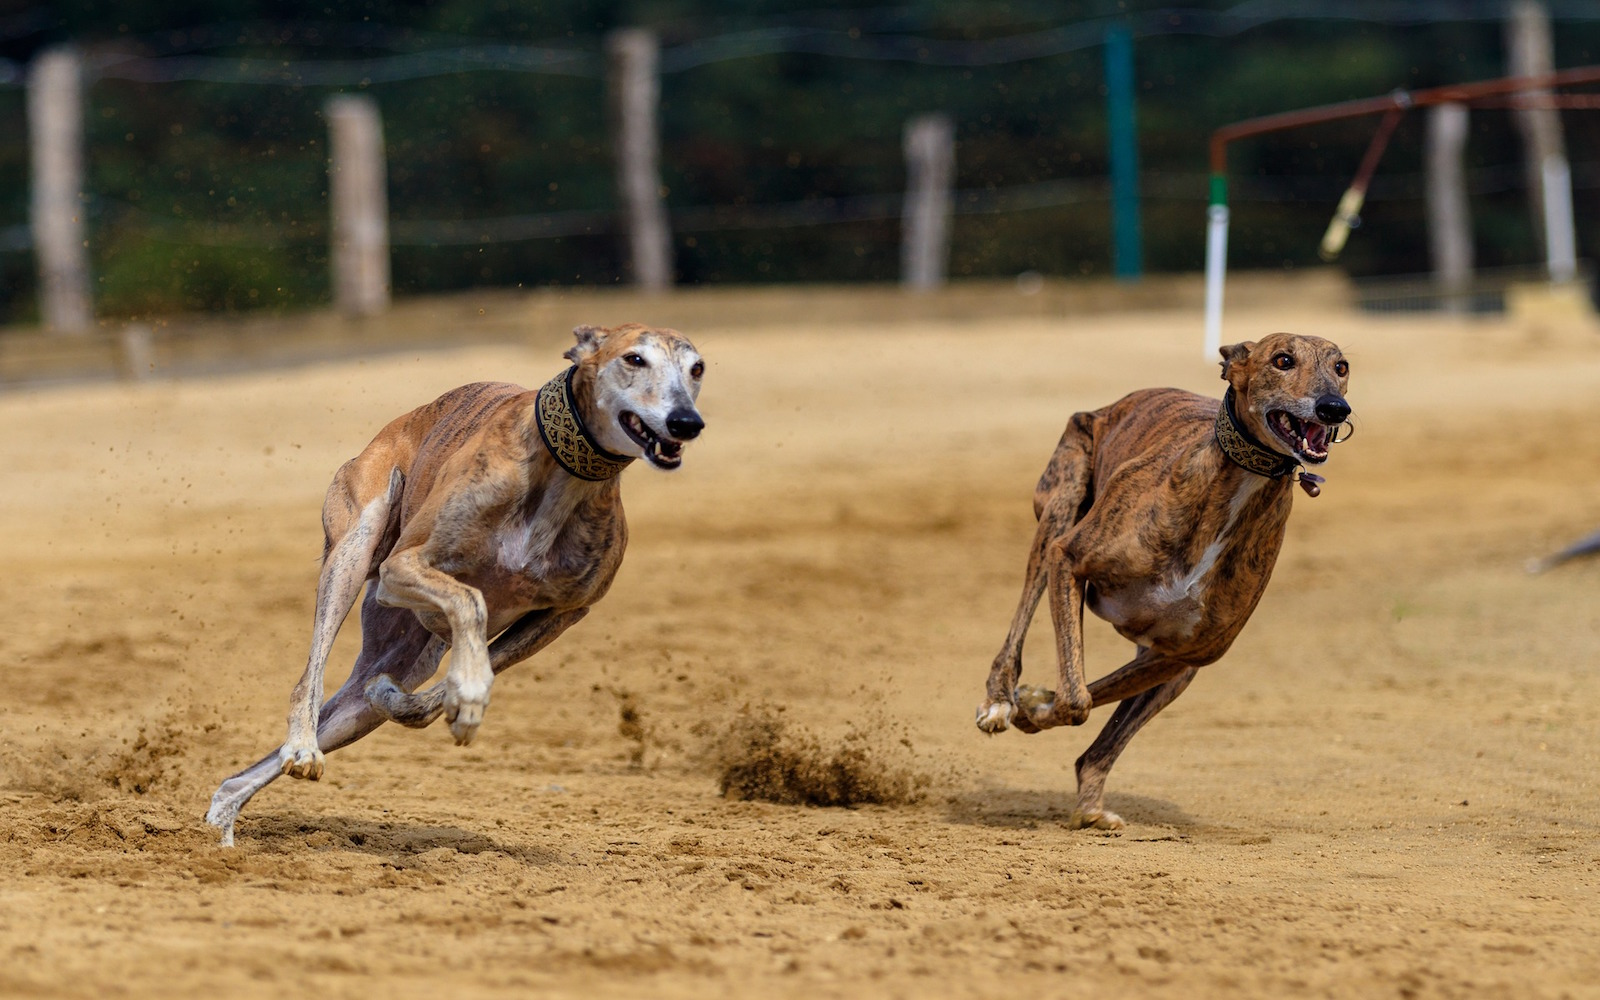 Lives Of Greyhounds In Racing Industry